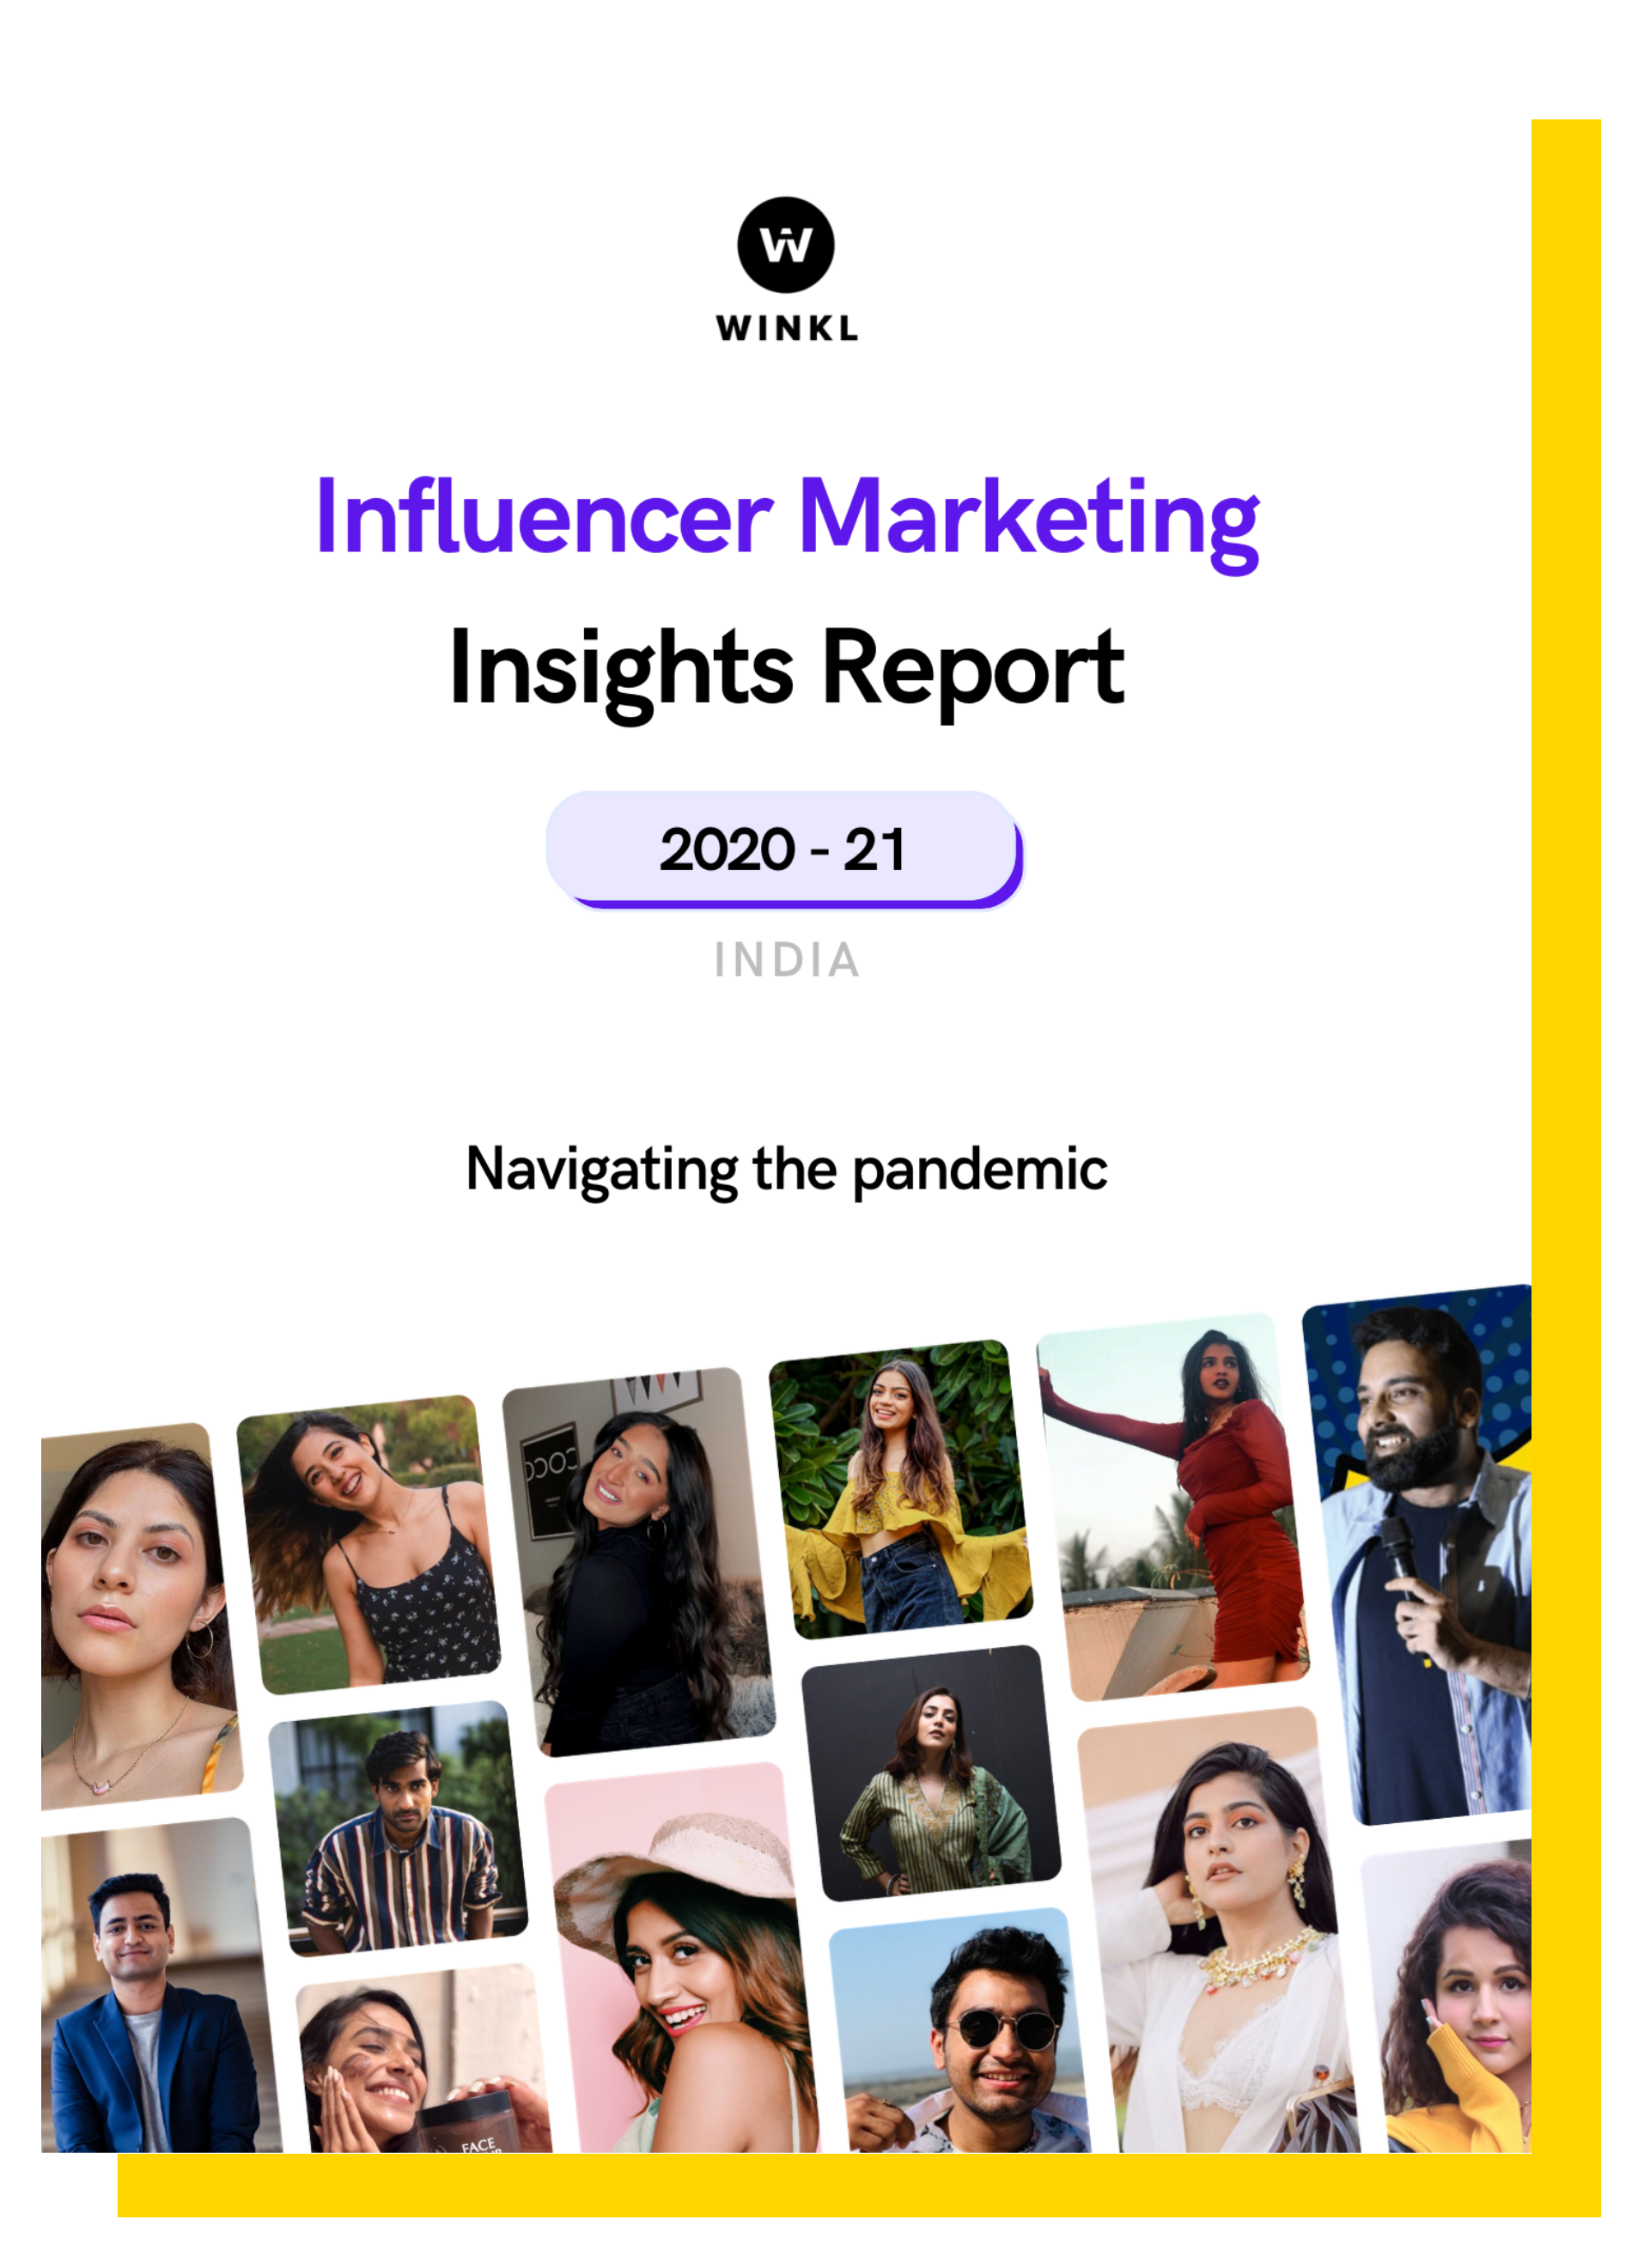 Get better ROI on your influencer marketing campaigns with winkl. Resolve full campaign needs and meet your marketing goals.